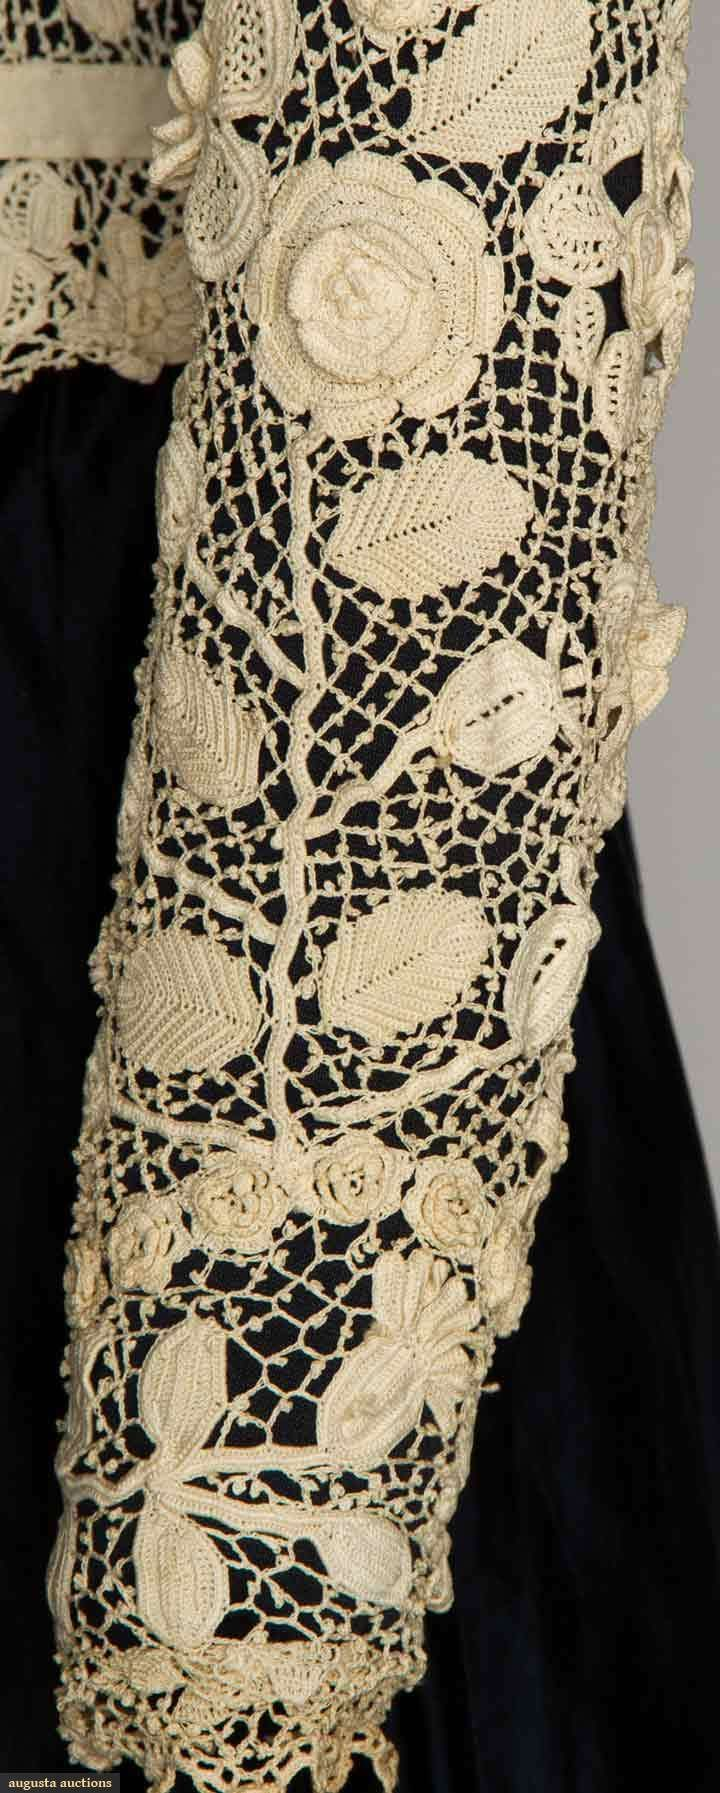 Augusta Auctions, April 17, 2013 - NYC: Two White Lace Blouses, 1900-1905